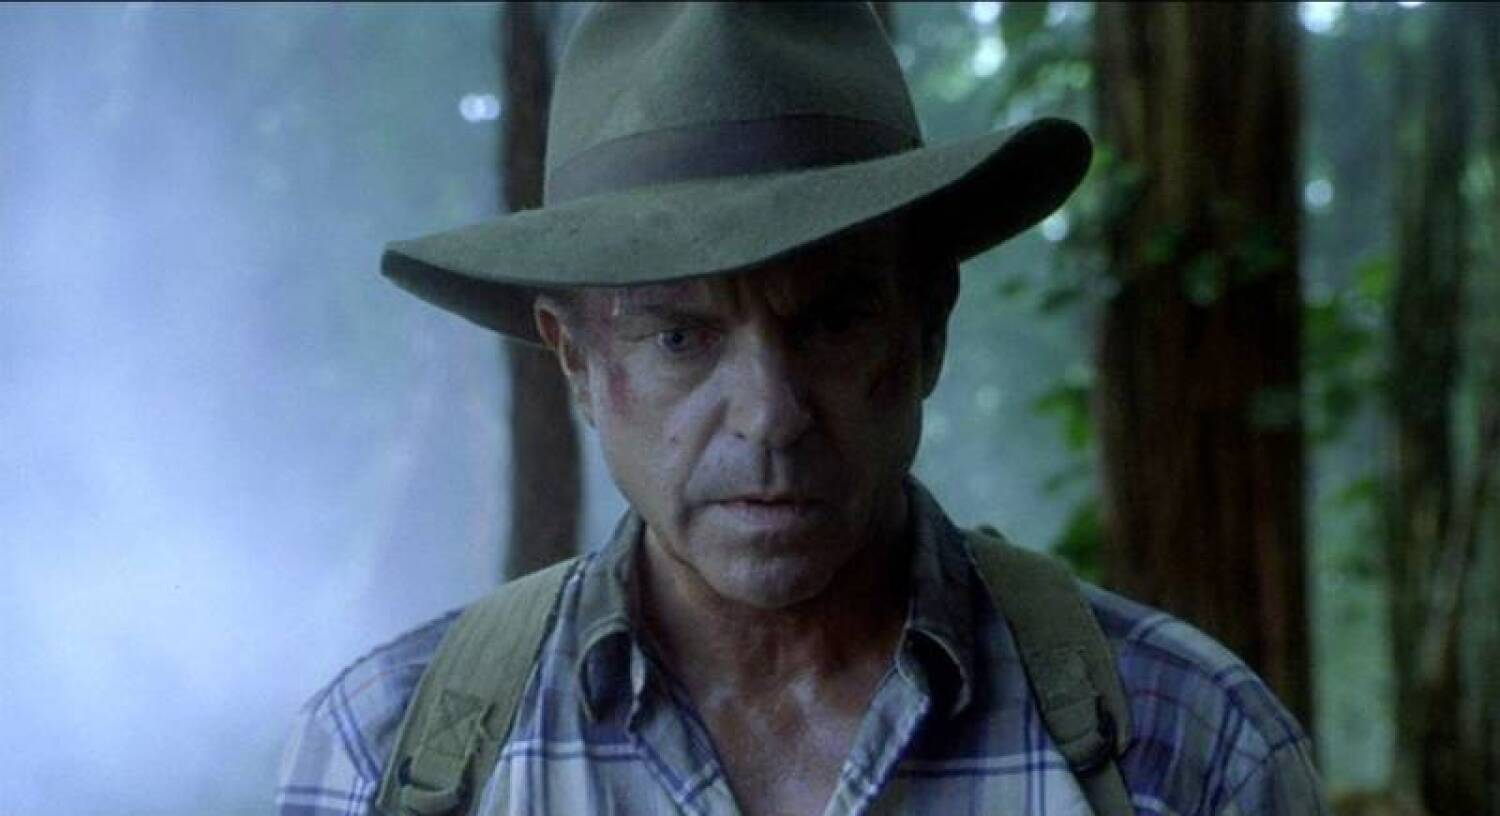 JURASSIC PARK III SAM NEILL HAT - Current price: $900